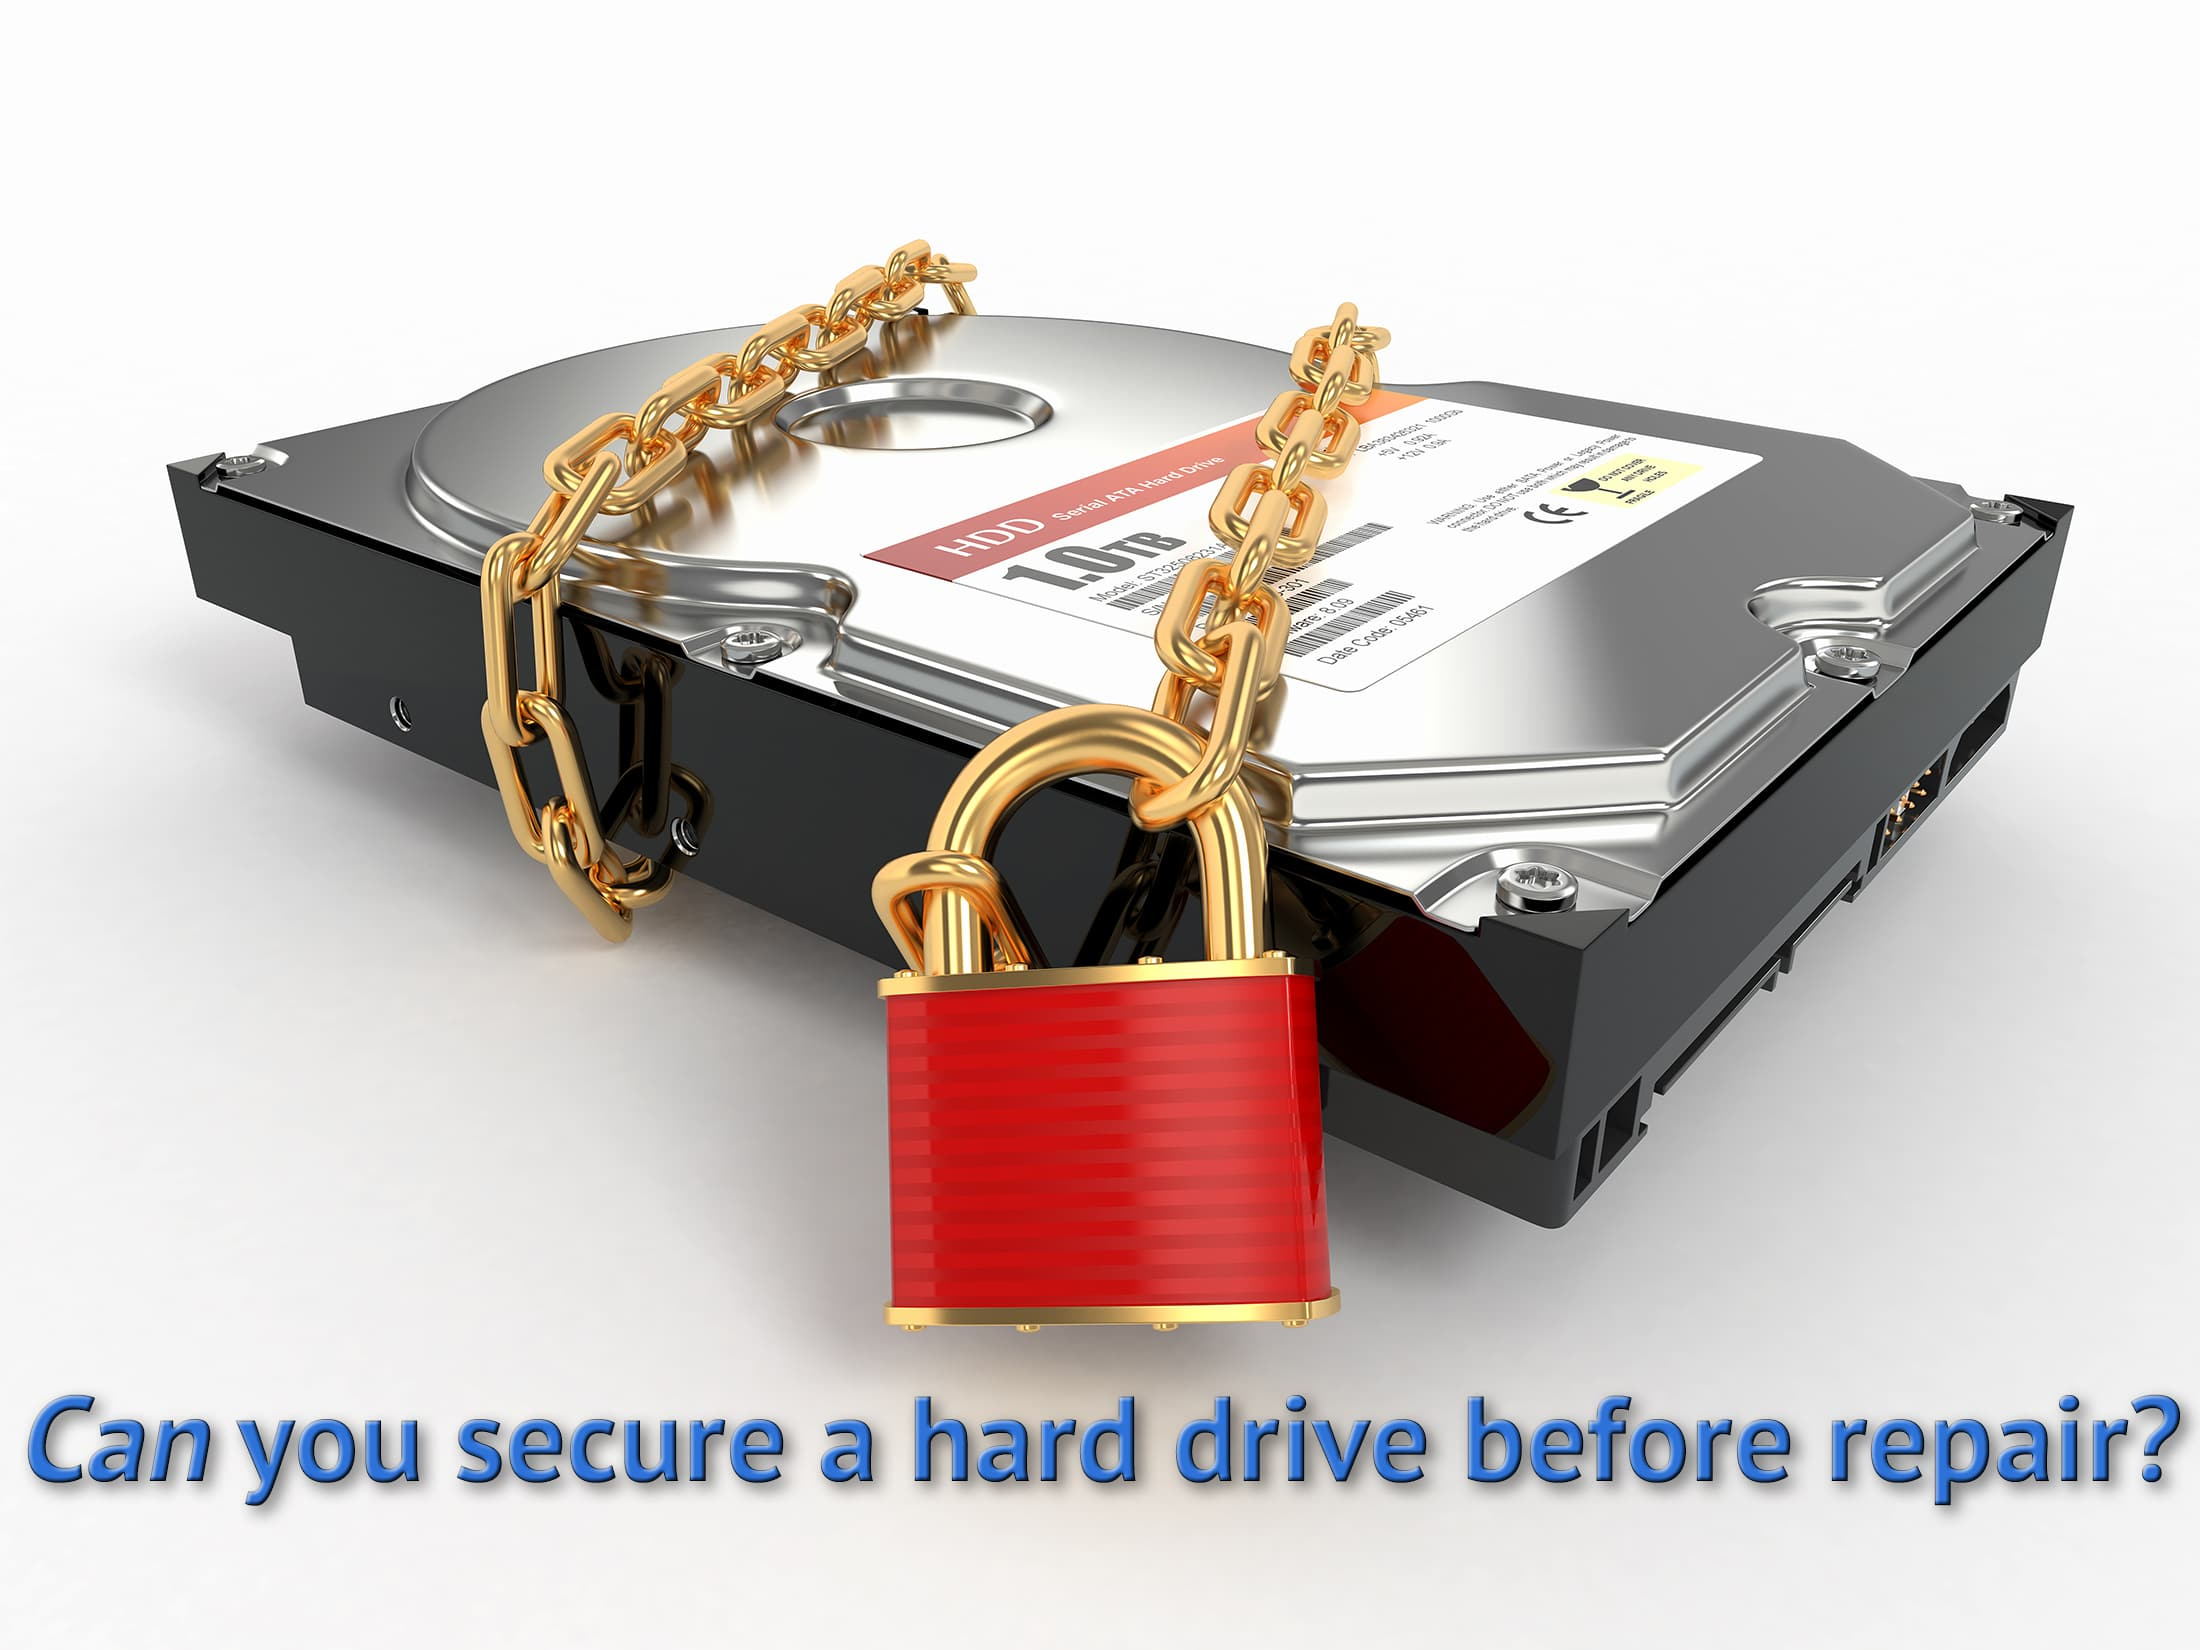 How do I secure a hard drive before sending it in for repair